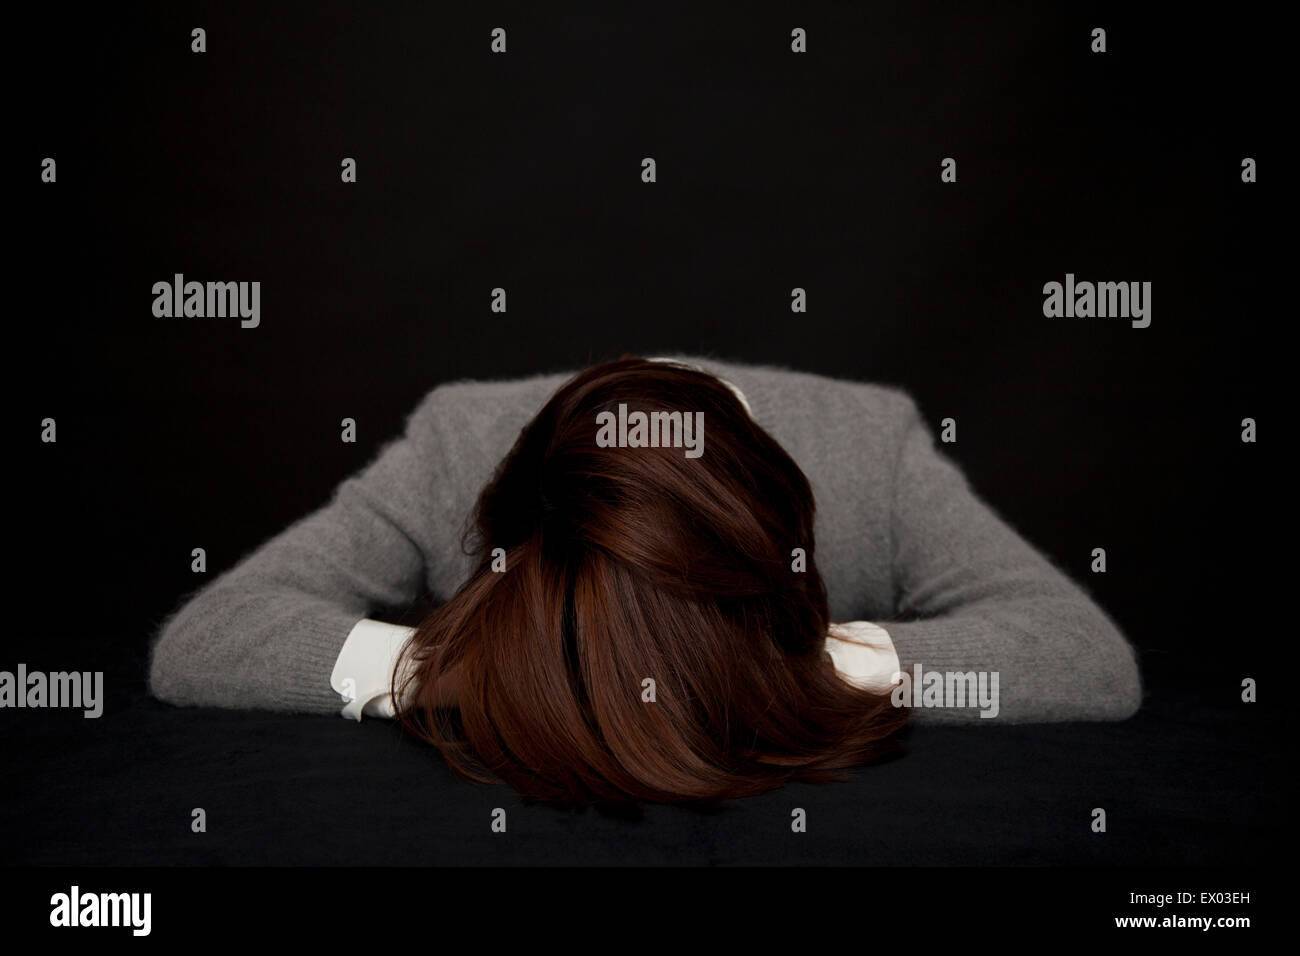 Portrait of woman resting head on table - Stock Image